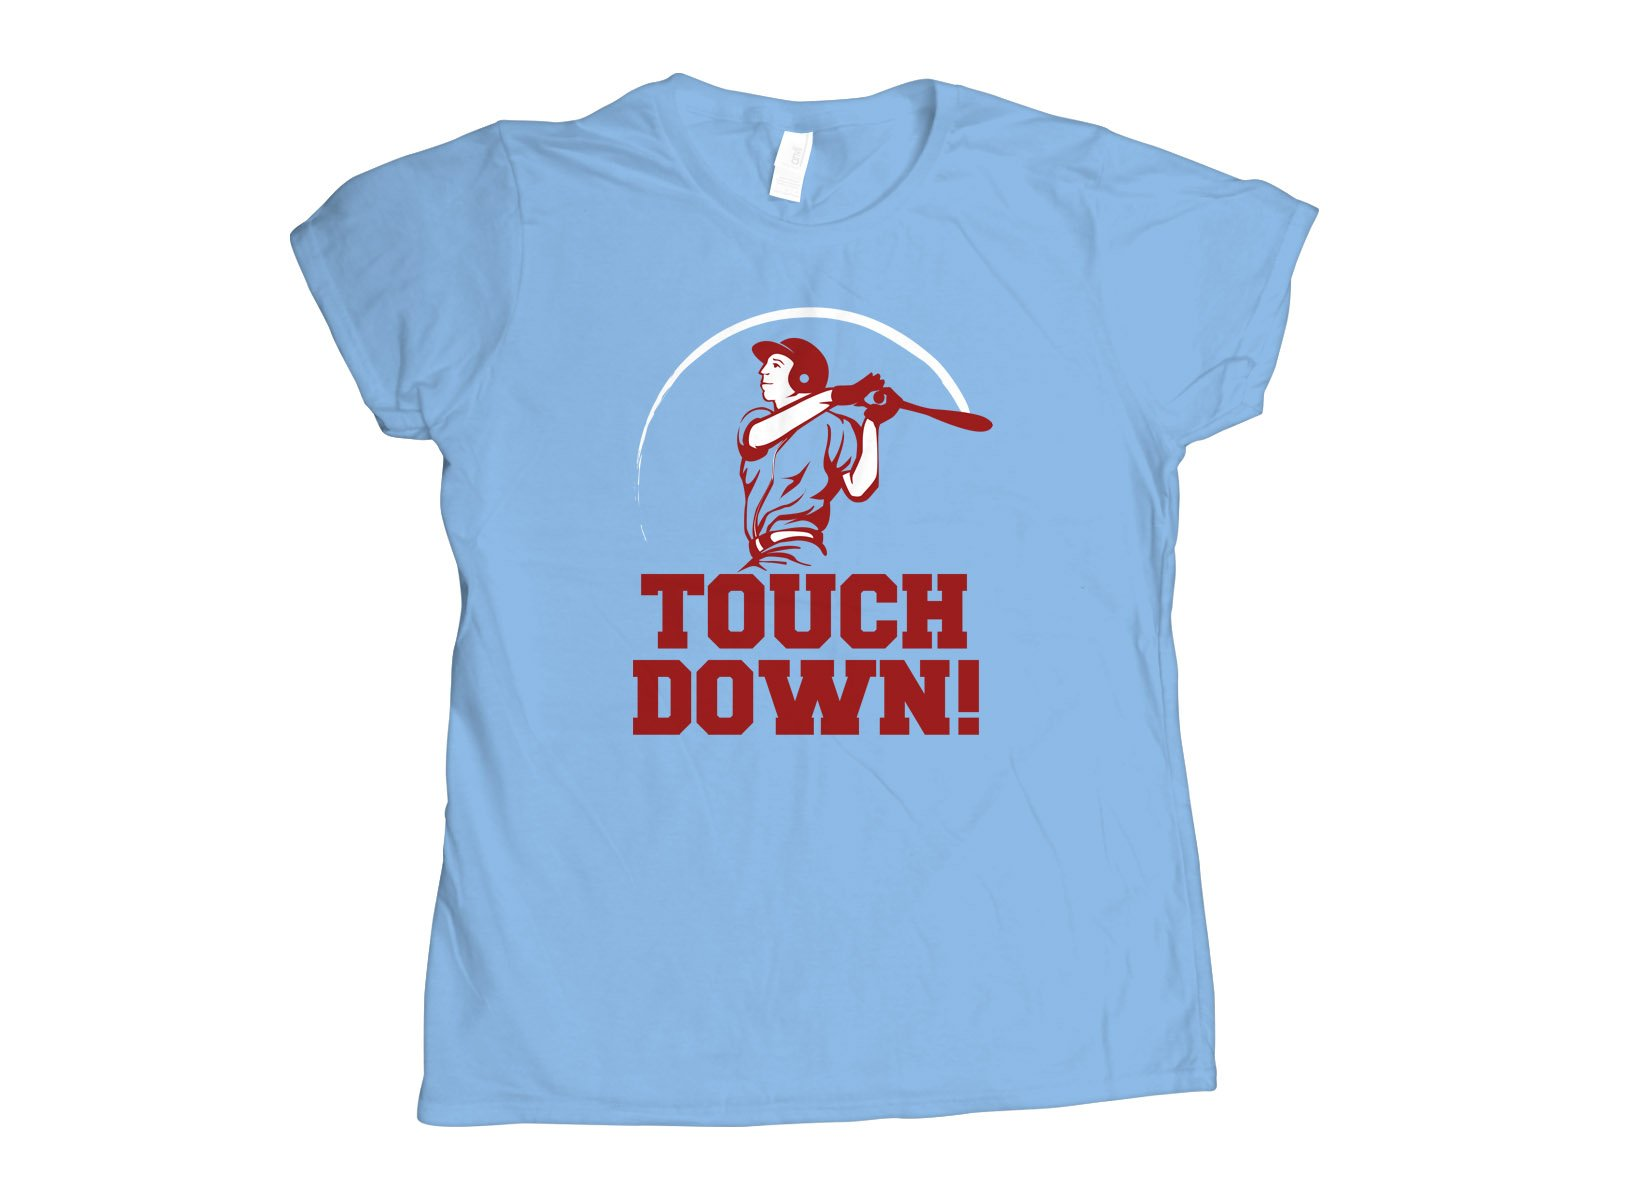 Touchdown! on Womens T-Shirt